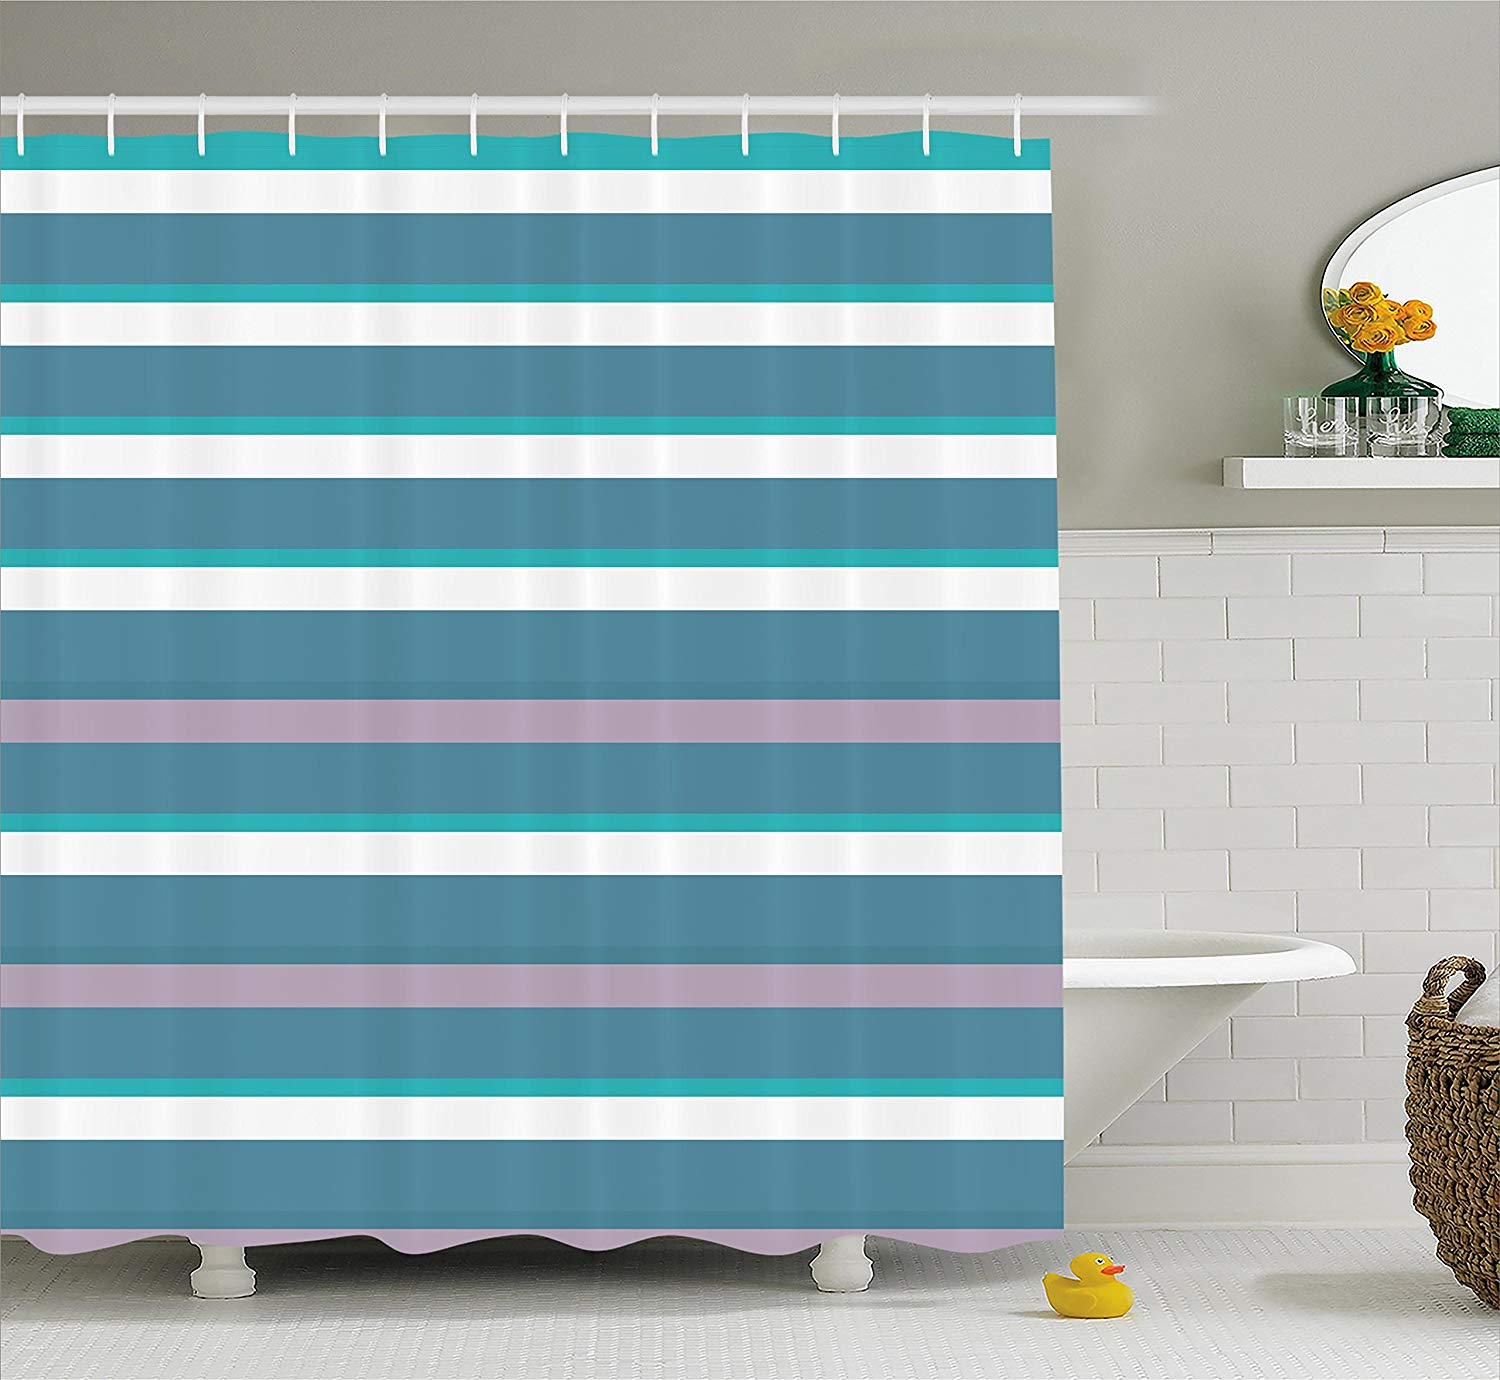 Striped Shower Curtain Turquoise Dark Teal Stripes Thick And Thin Lines With Aqua Colors Pattern Art Print Fabric Bathroom Decor Shower Curtains Aliexpress